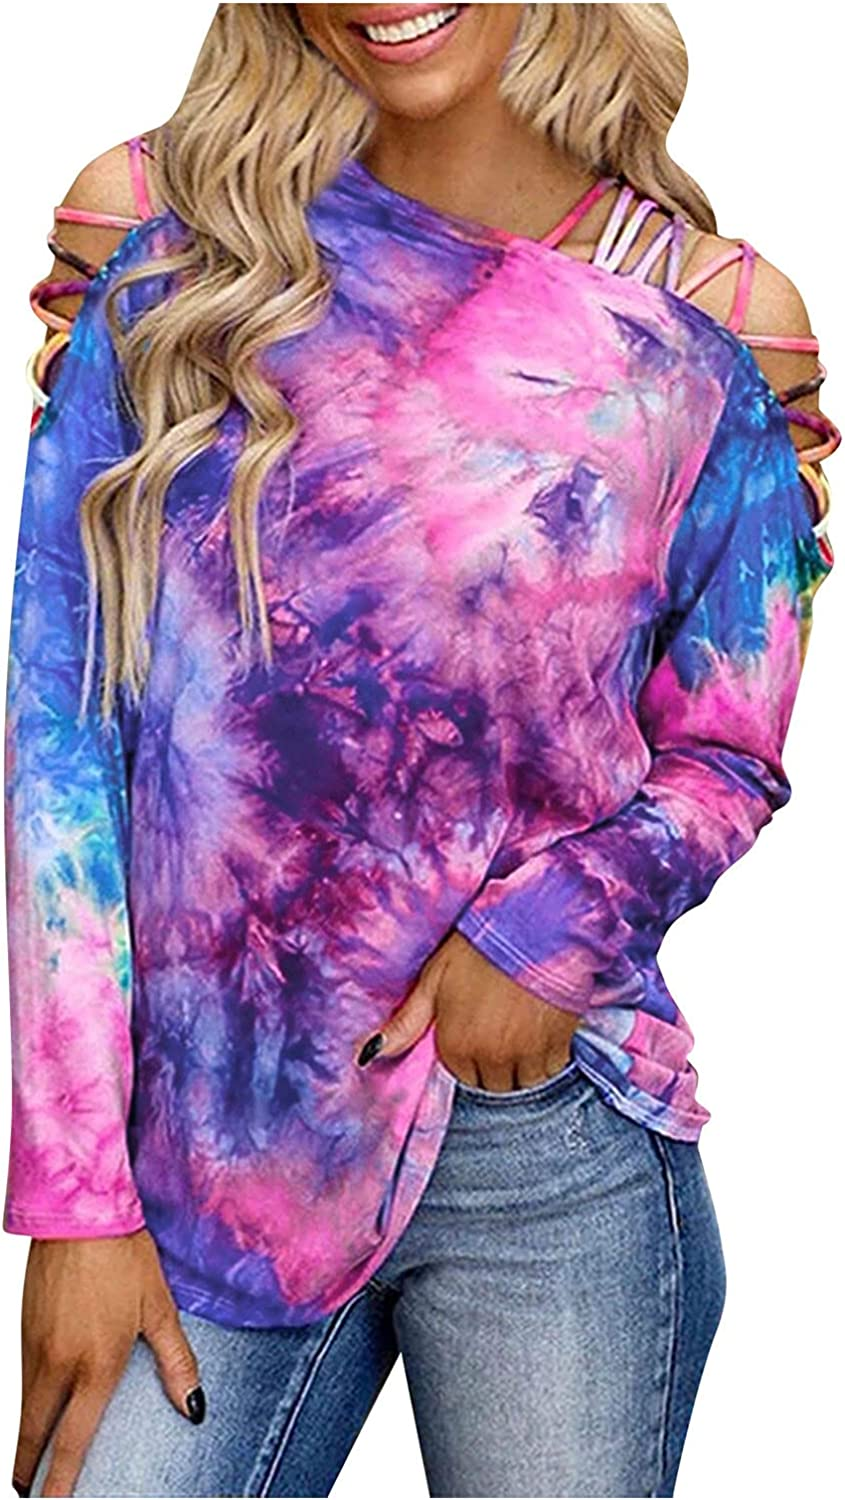 Lsilina Women's Tie Dye Print Tunic Top V-Neck T-Shirt Casual Blouse Summer Tunic Loose Tees Long Sleeve Cold Shoulder